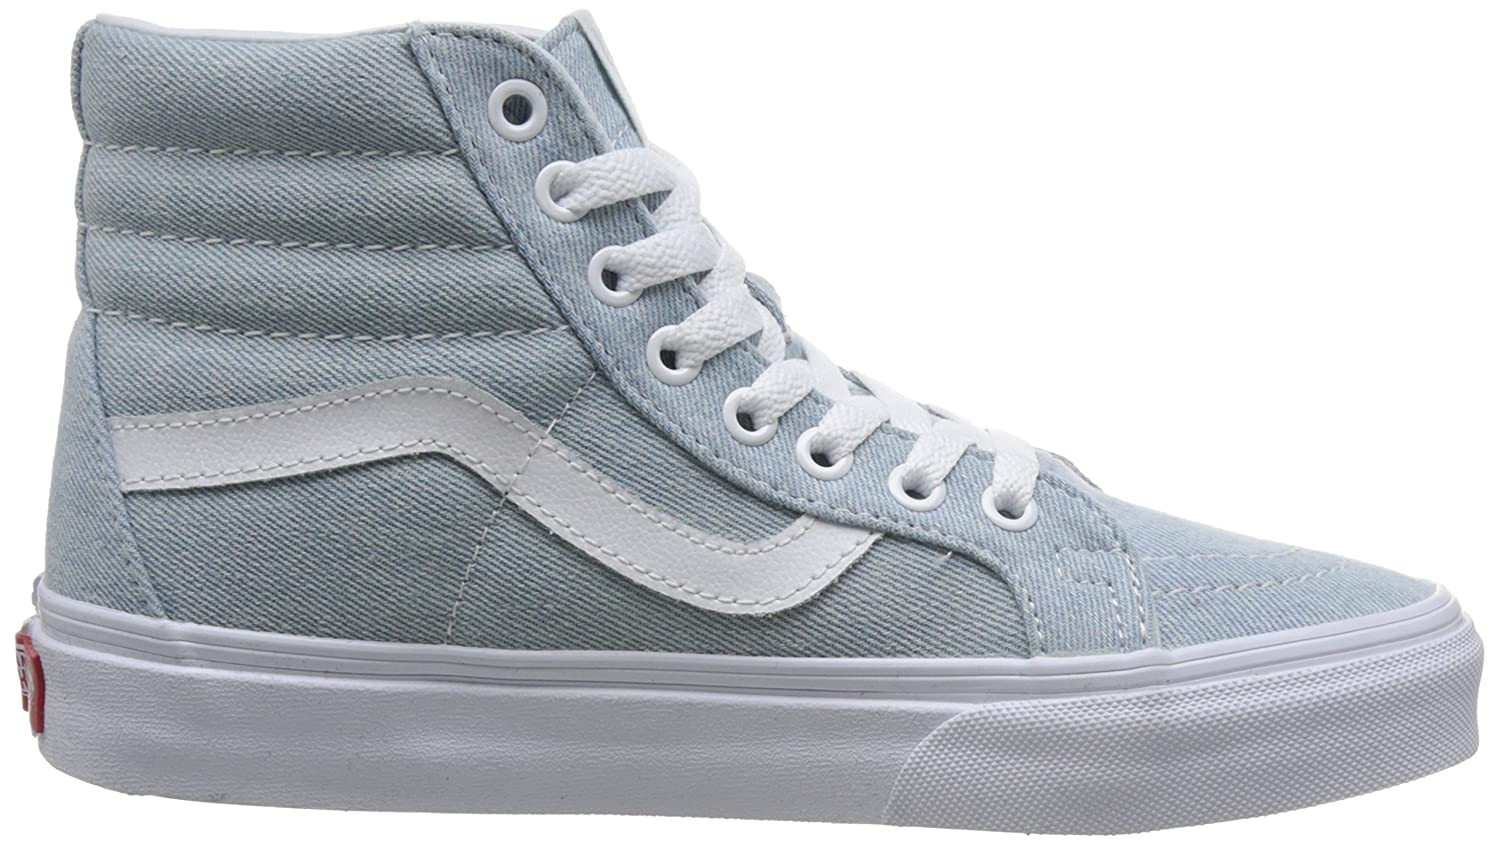 VANS MENS SK8 HI REISSUE LEATHER US SHOES B076CV26VK 6 D(M) US LEATHER / 7.5 B(M) US|Baby Blue dbbdfc